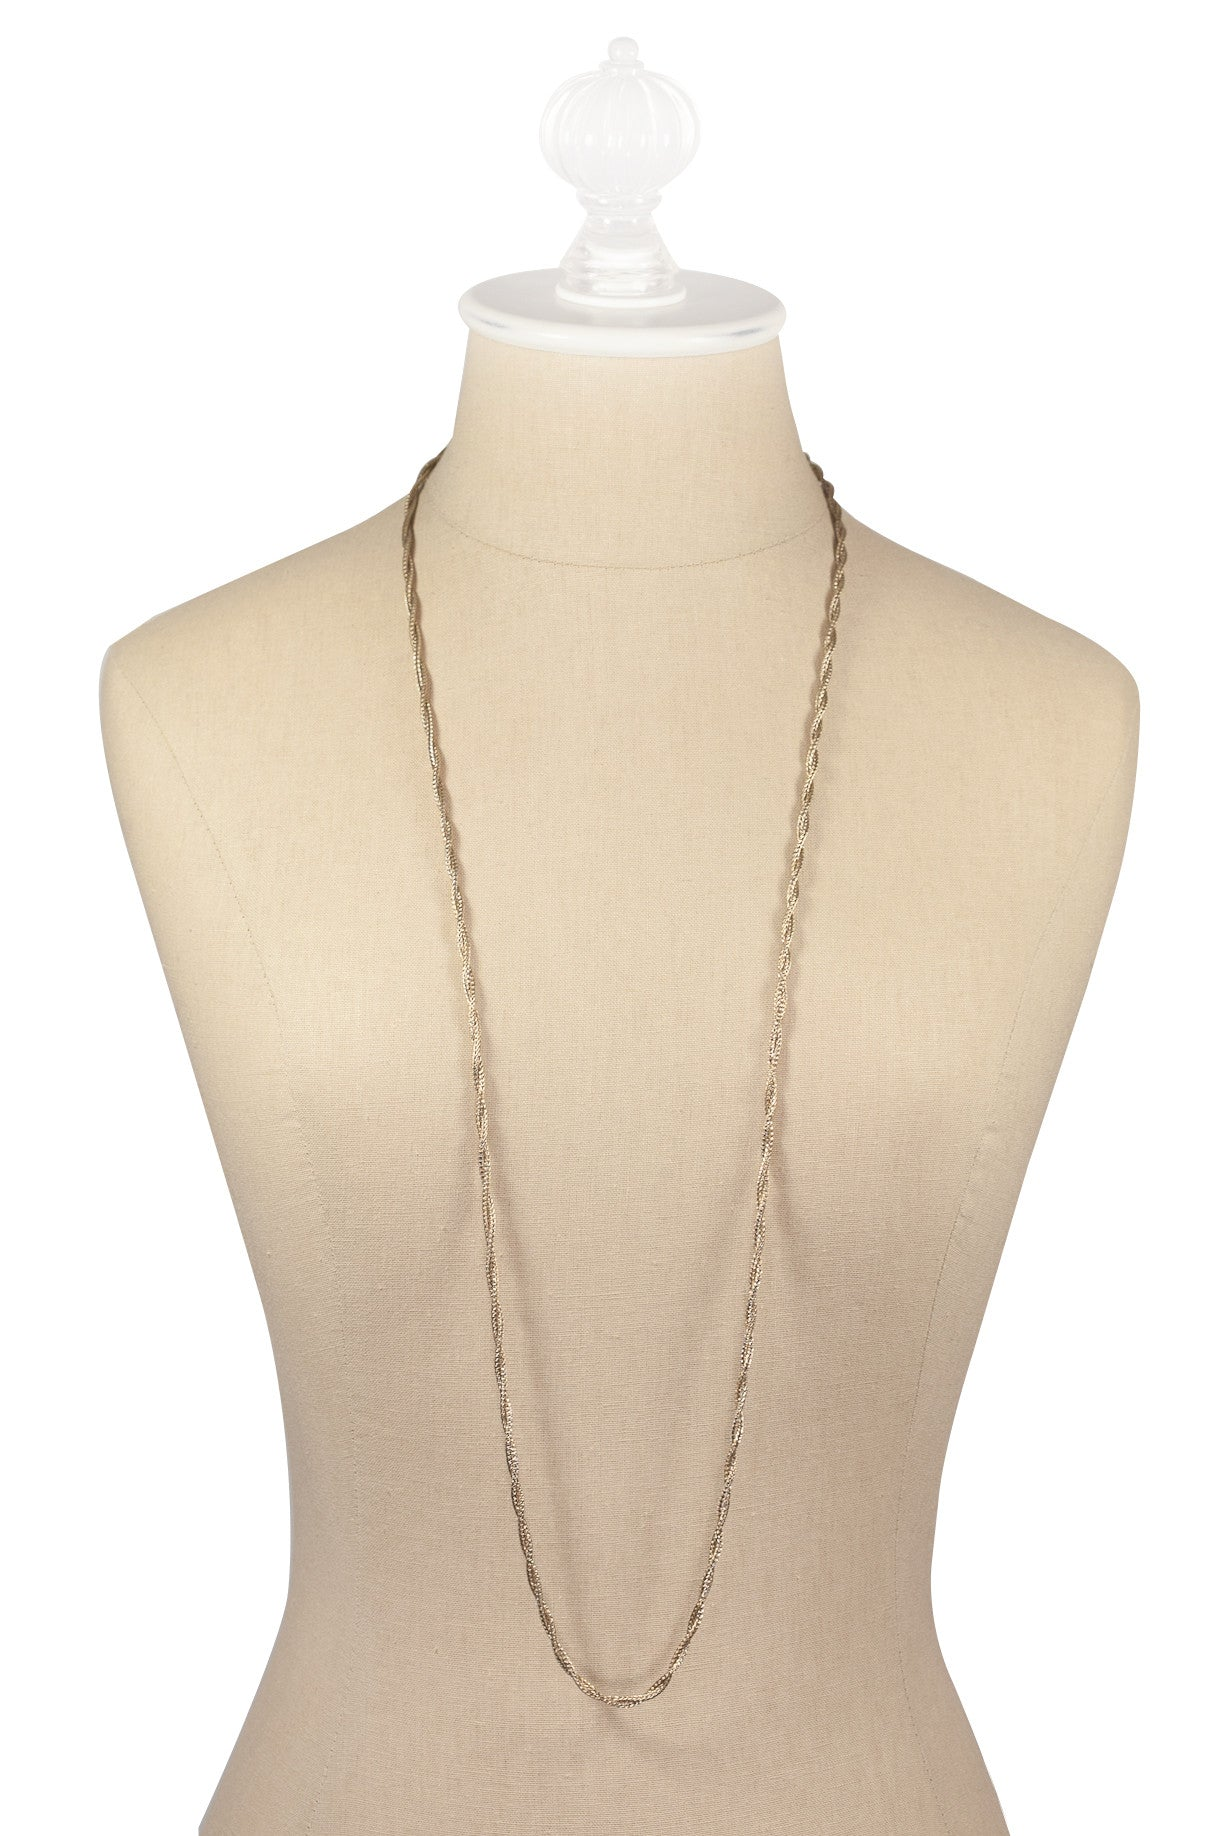 70's__Christian Dior__Twisted Mesh Necklace